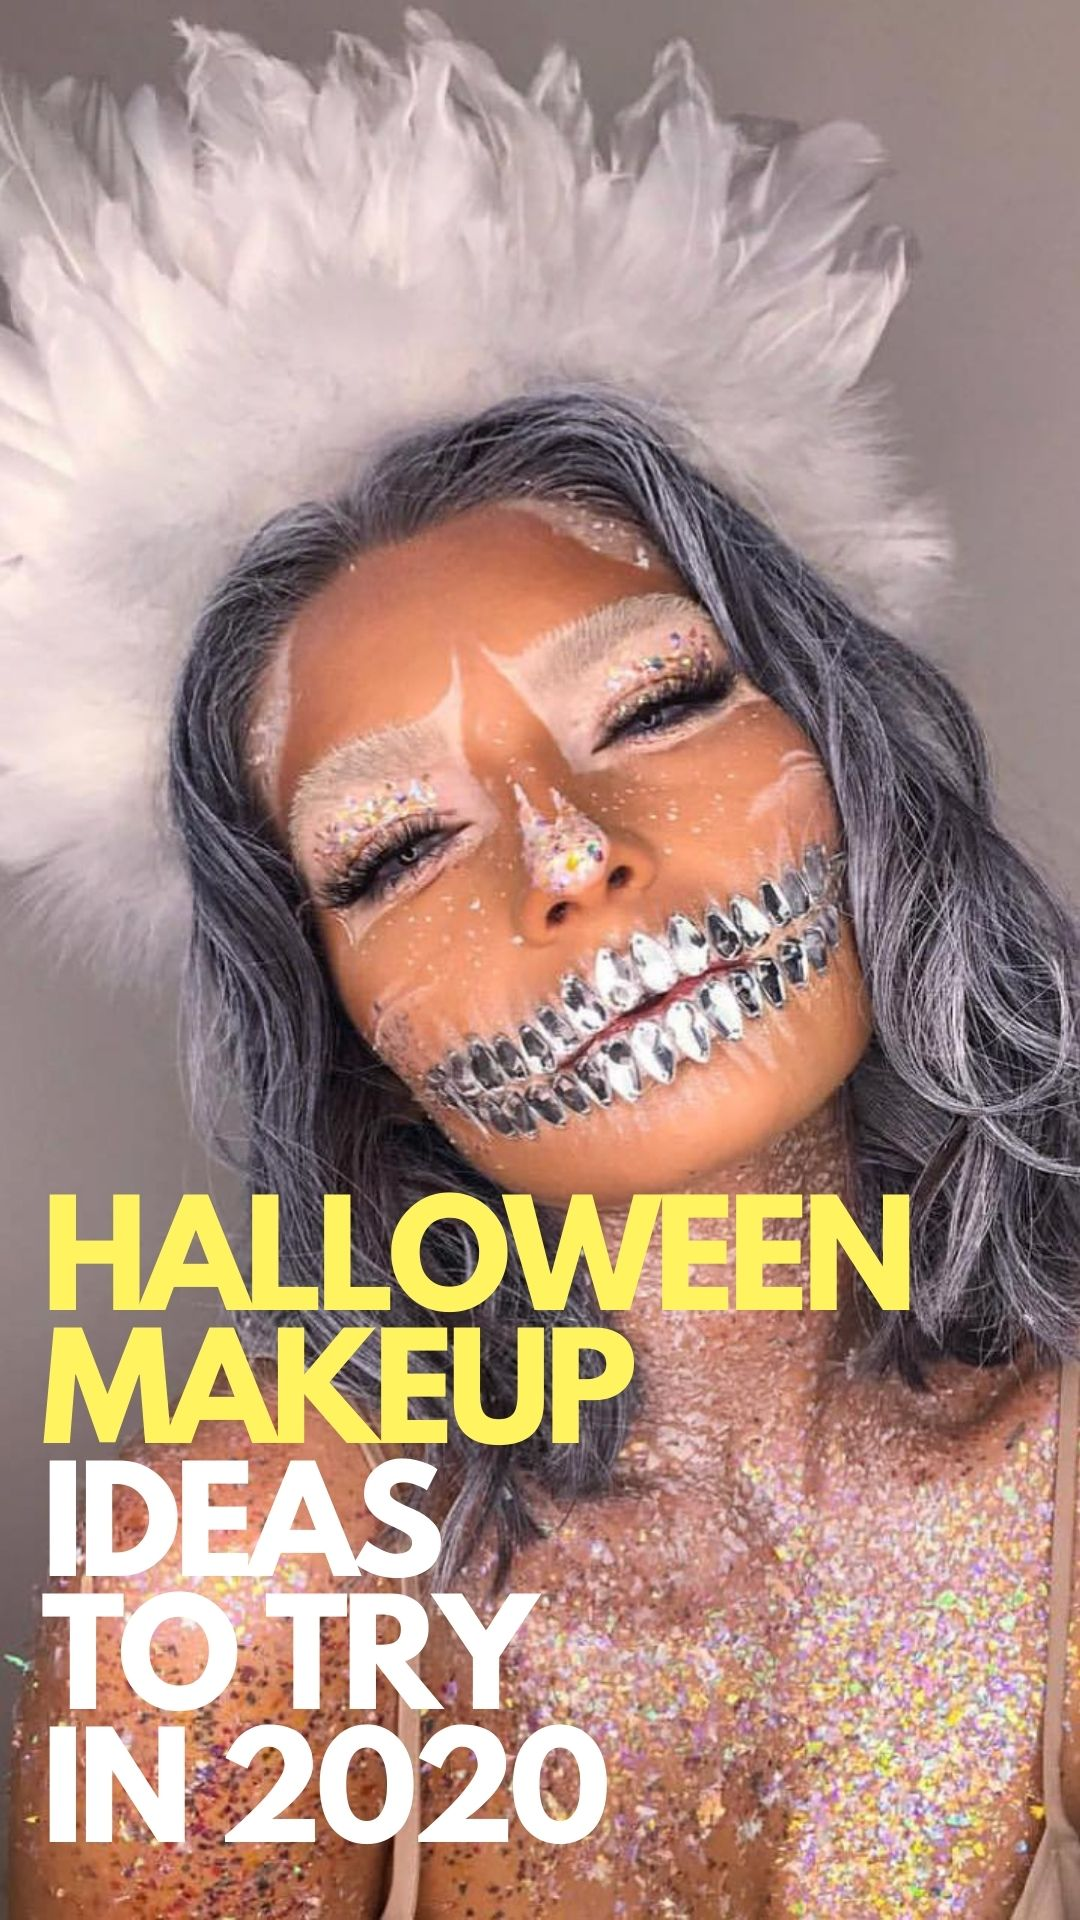 Halloween Makeup Ideas To Try in 2020